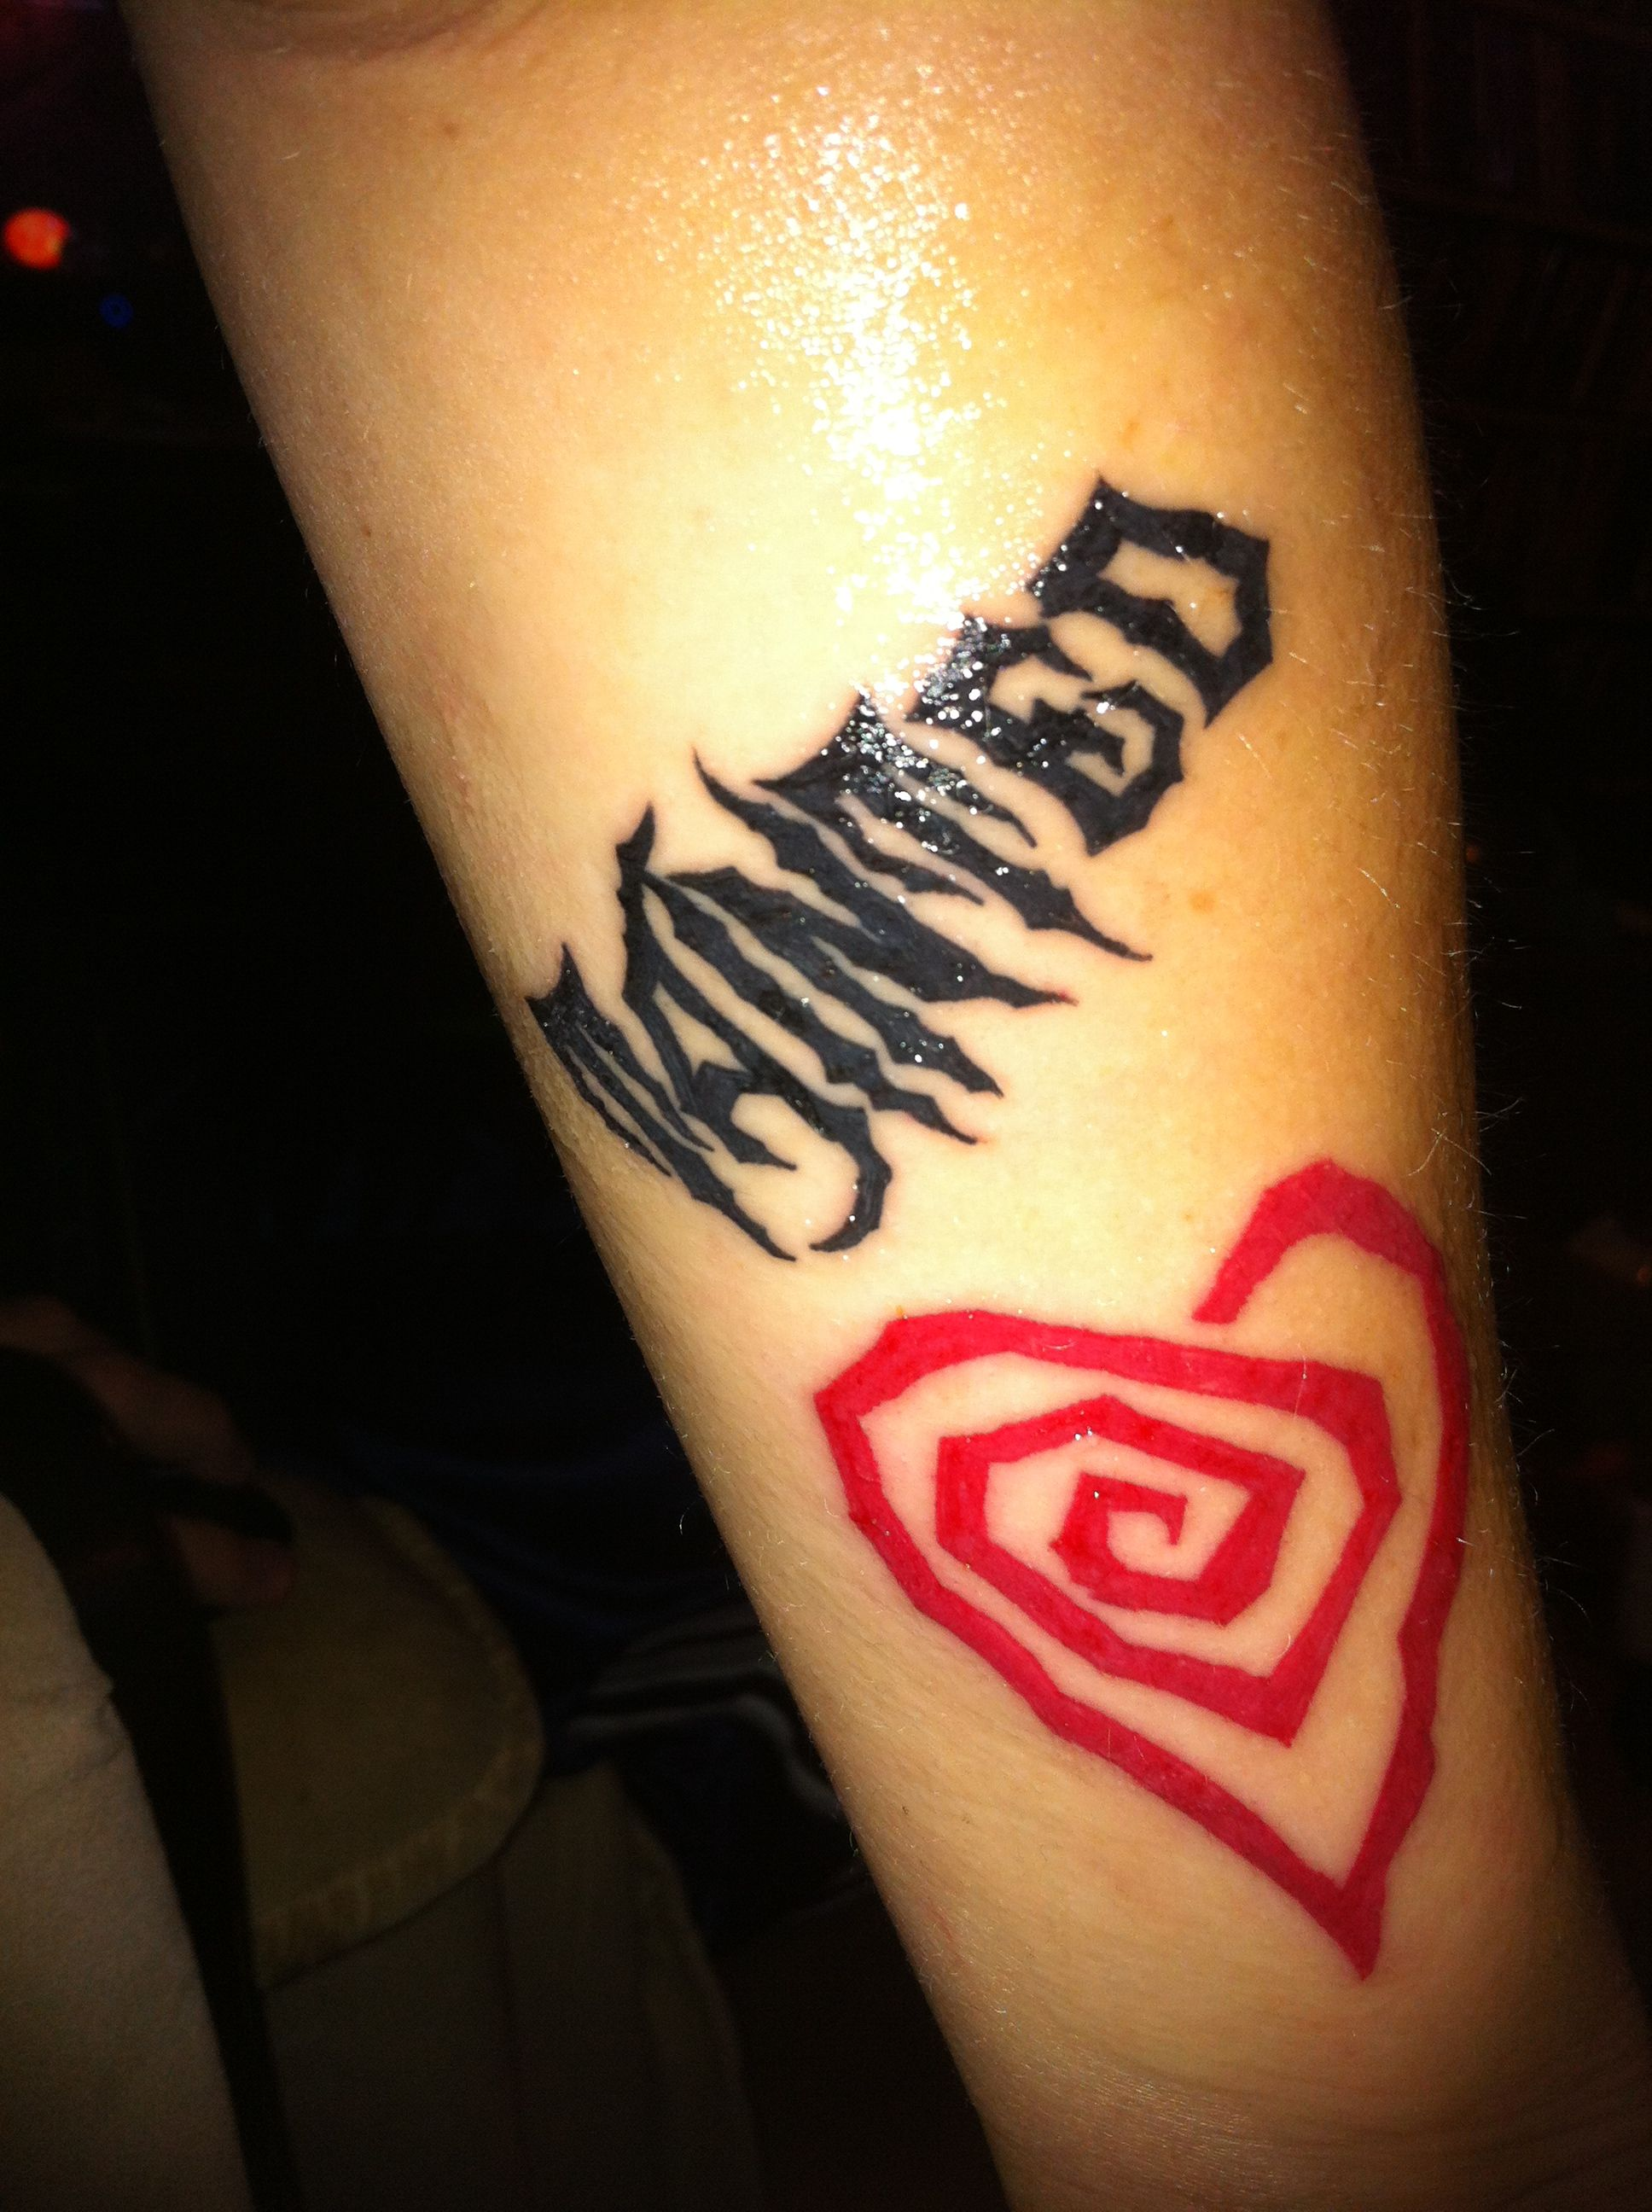 Marilyn Manson Heart Tattoo: Tainted Love!! Love This Song, Especially Marilyn Manson's